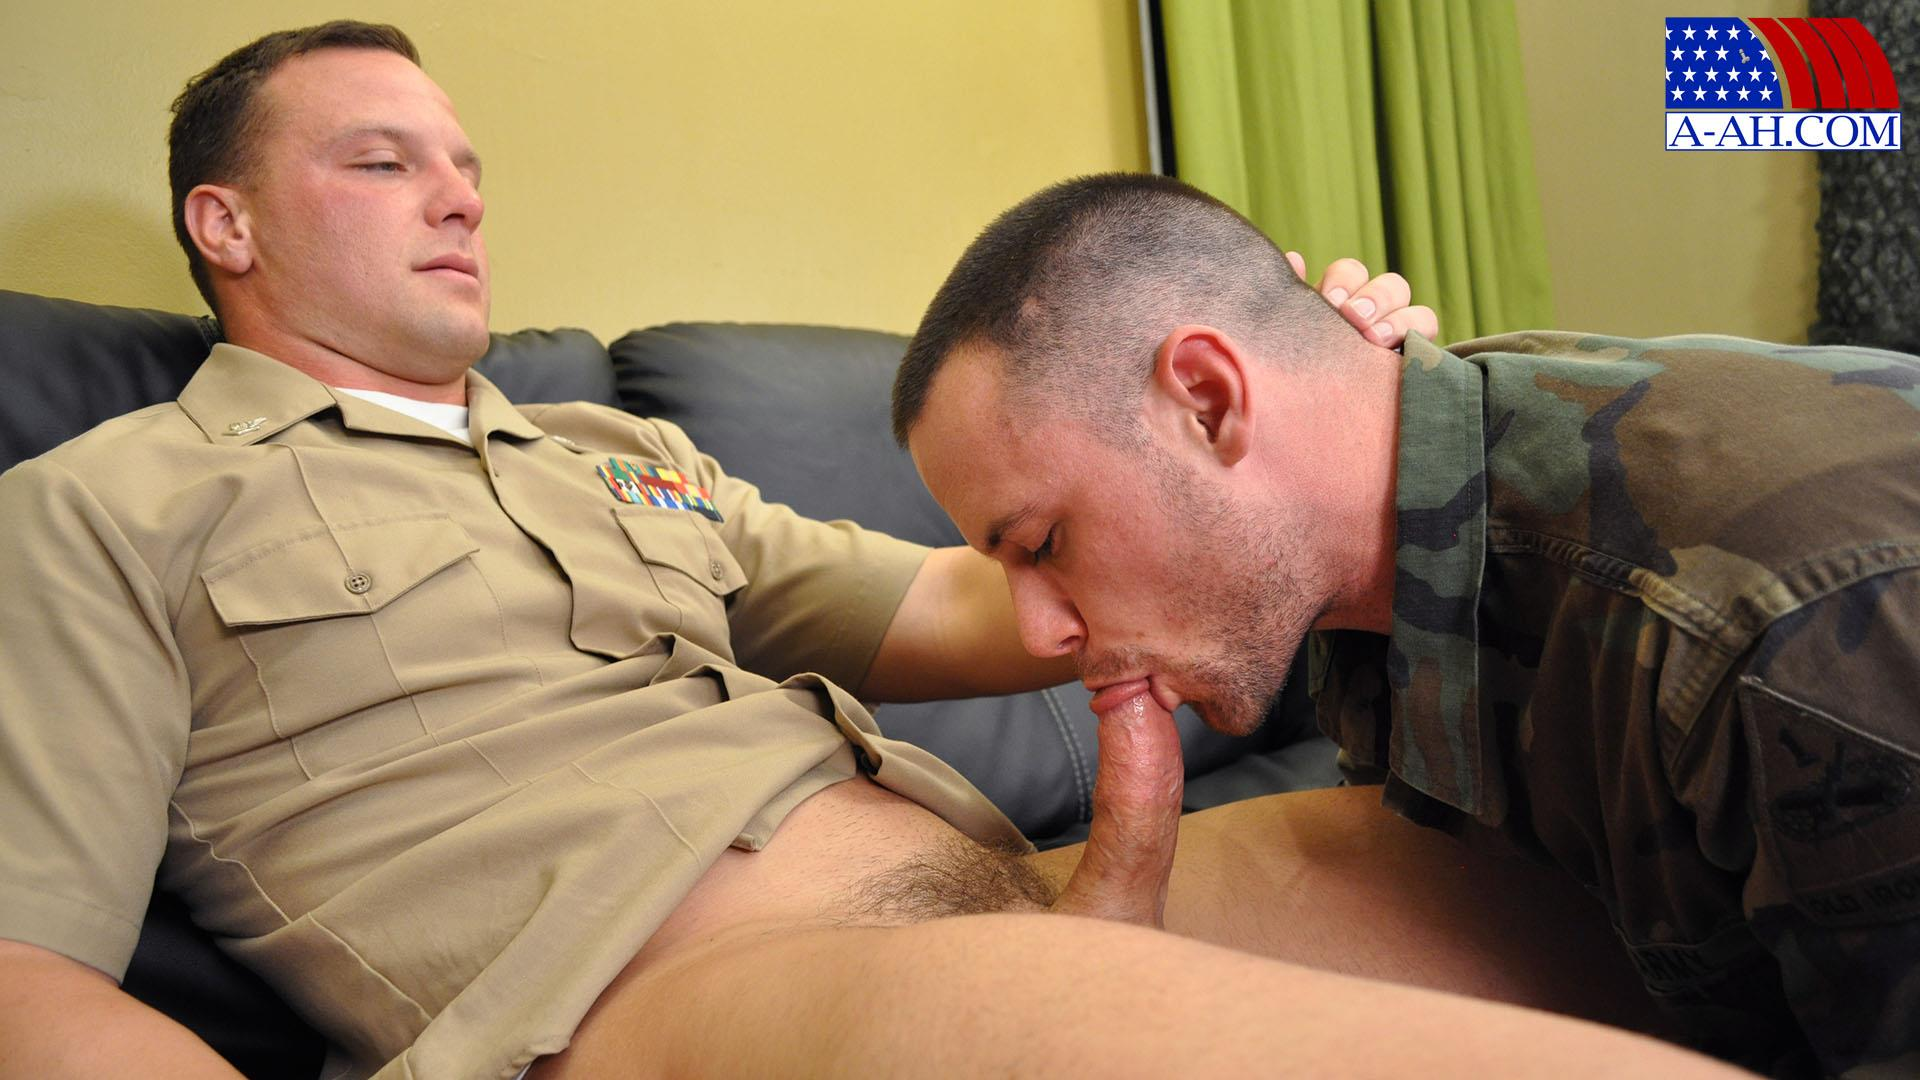 All American Heroes NAVY CORPSMAN LOGAN FUCKS SERGEANT MILES Military Guys Fucking Bareback Amateur Gay Porn 04 Real US Navy Corpsman Barebacking A US Army Sergeant